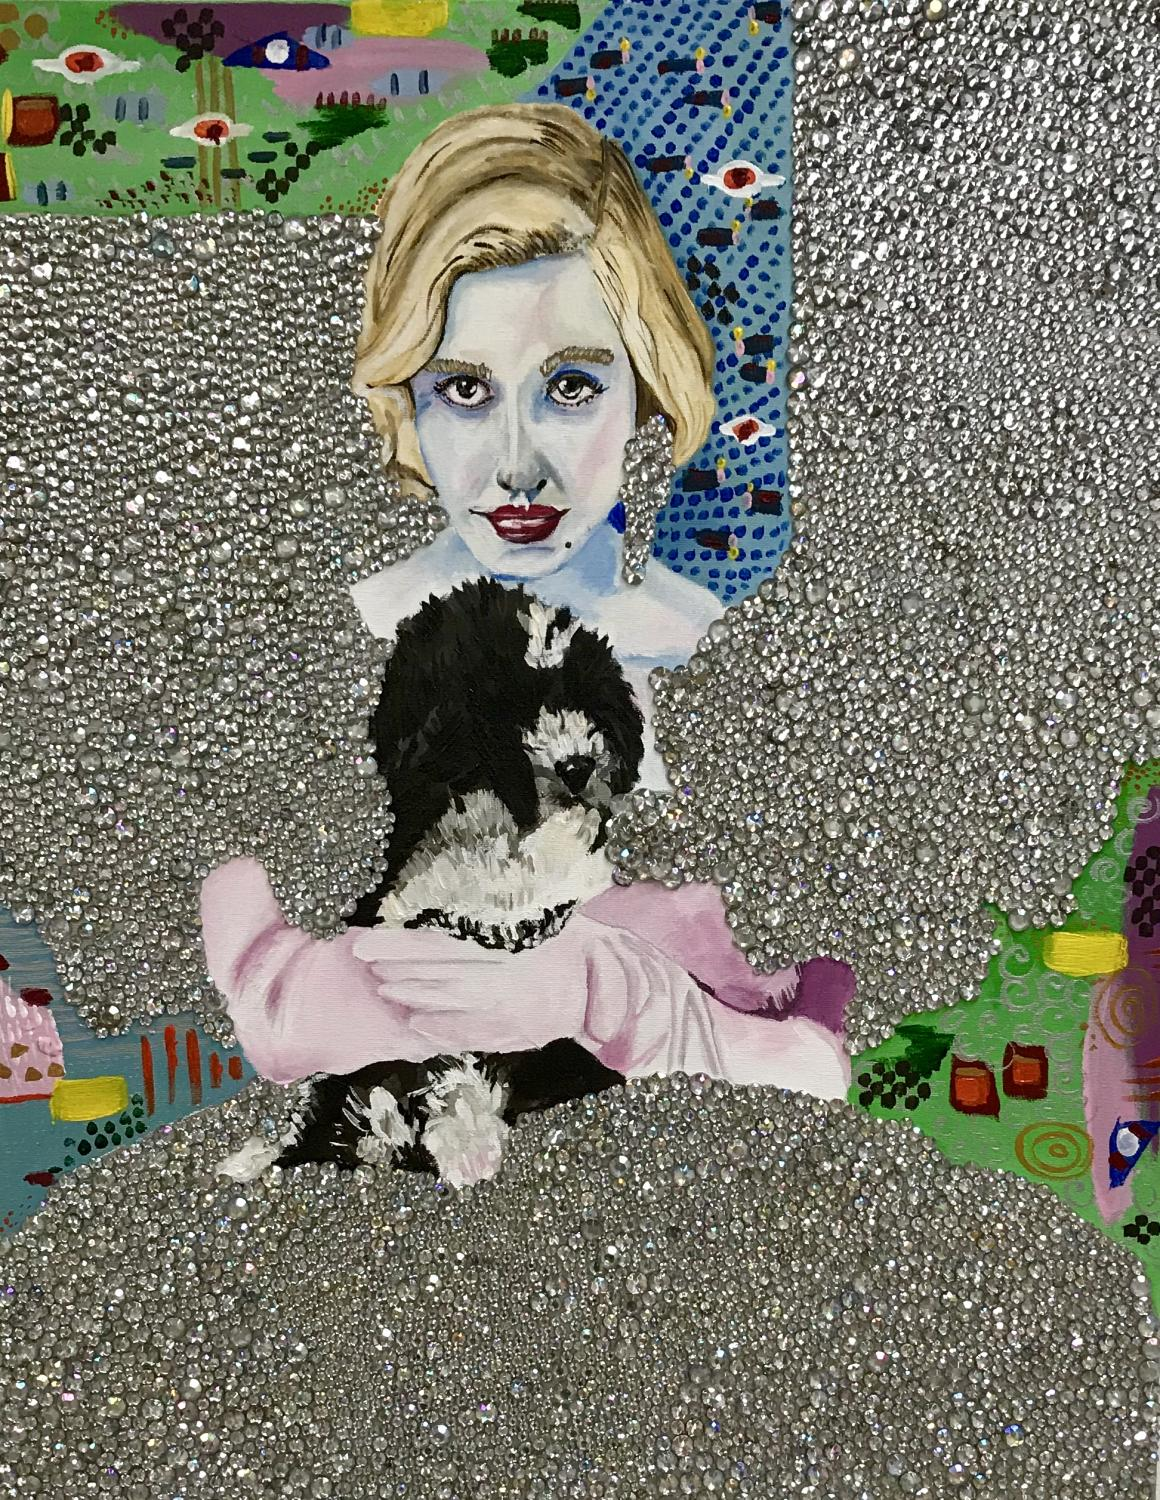 Portrait of a woman's face and small dog, arranged vertically like a totem pole. The field surrounding the figures is embellished with gray-silver assorted materials. The resulting effect is to make the painted portions seem ungrounded, like they float.